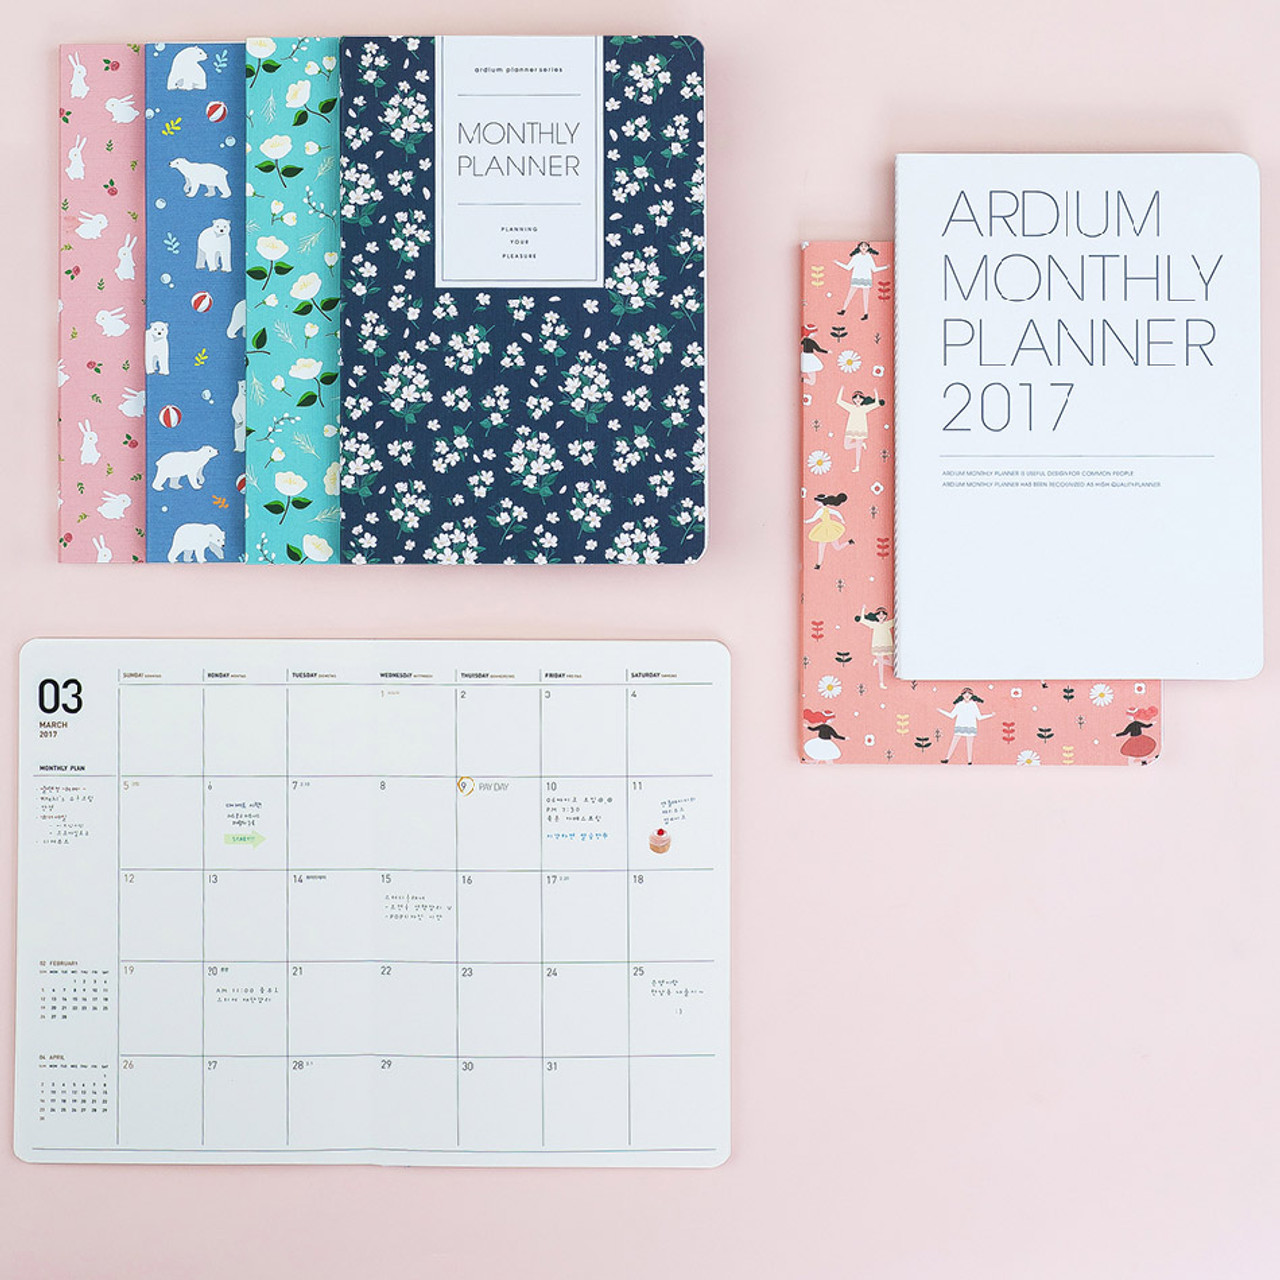 2017 ardium pattern monthly dated planner scheduler fallindesign